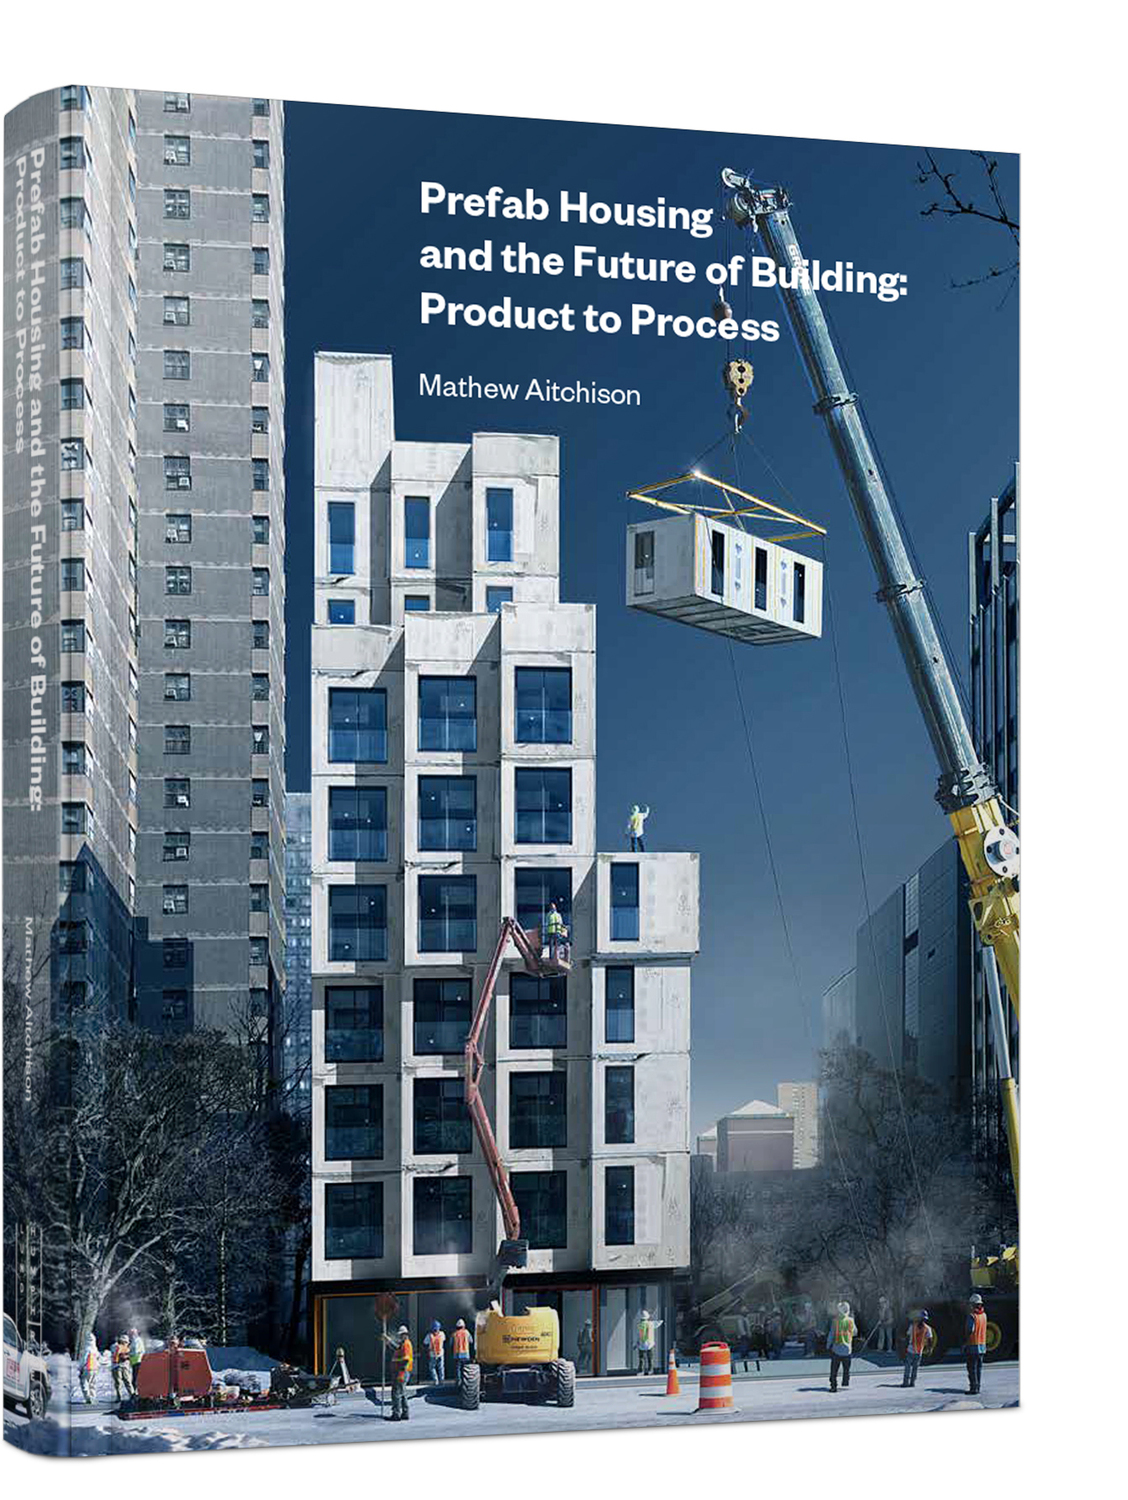 Prefab Housing and the Future of Building